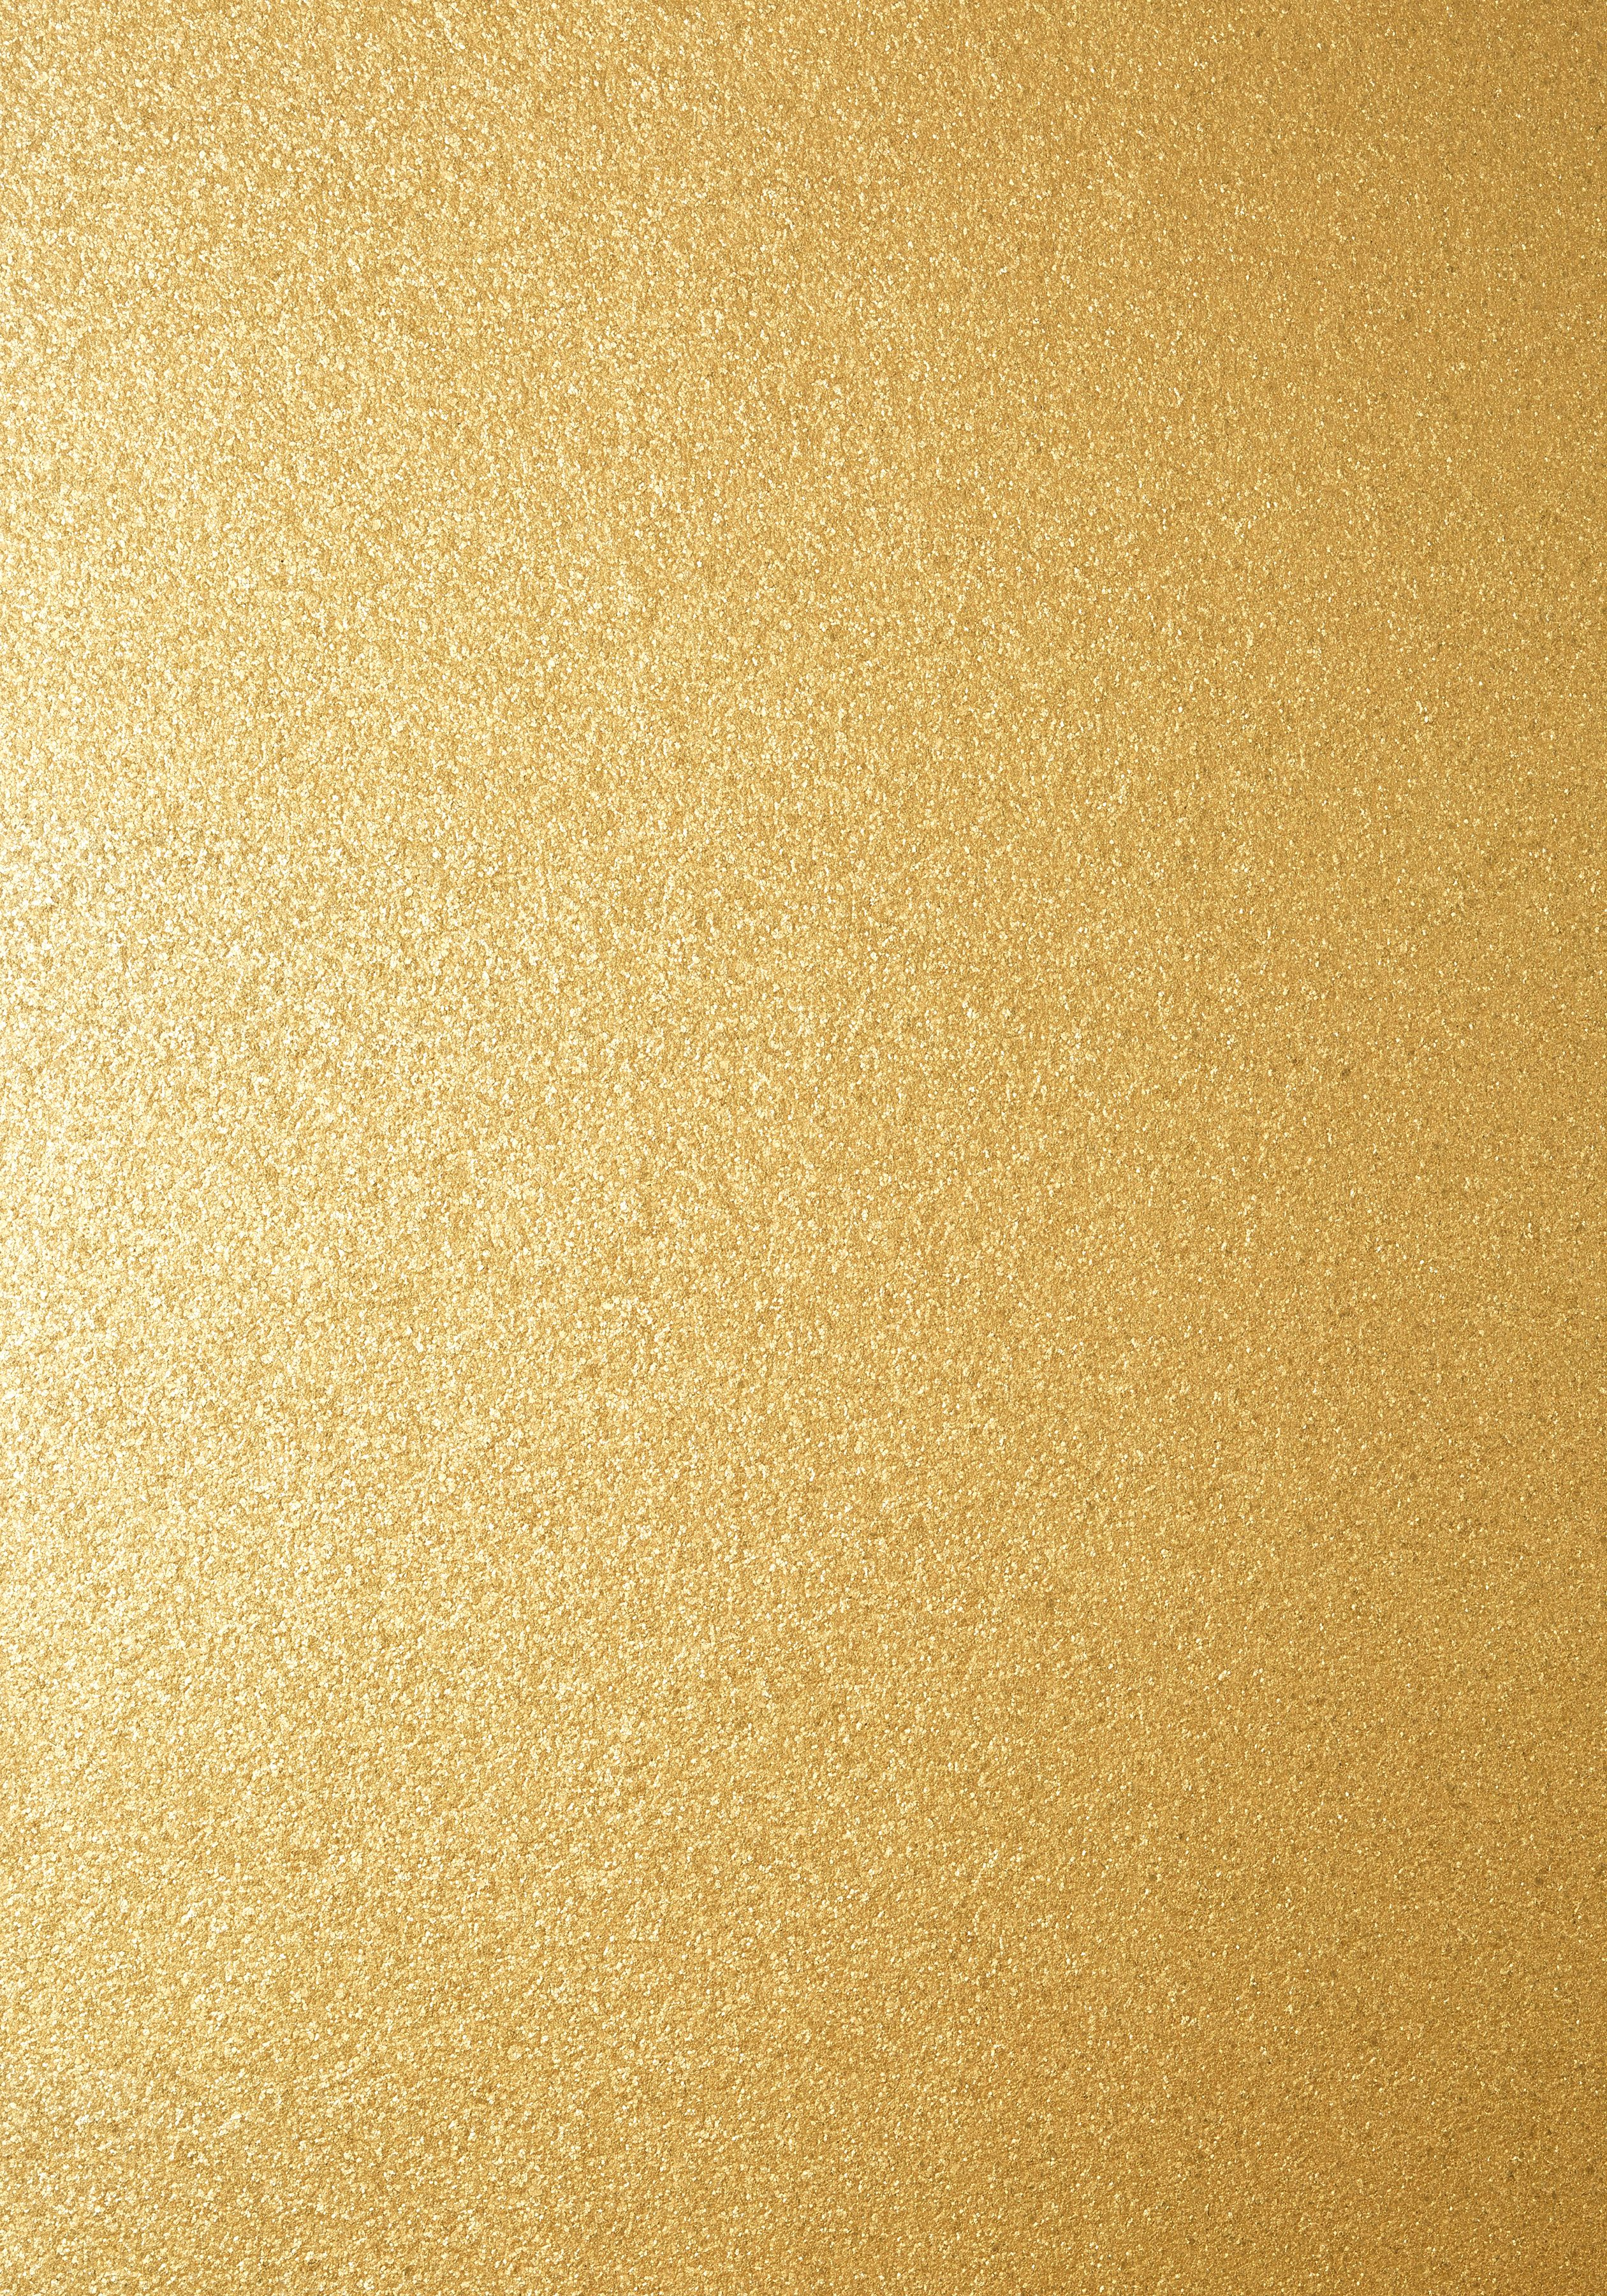 RODEO MICA, Metallic Gold, T83020, Collection Natural ...